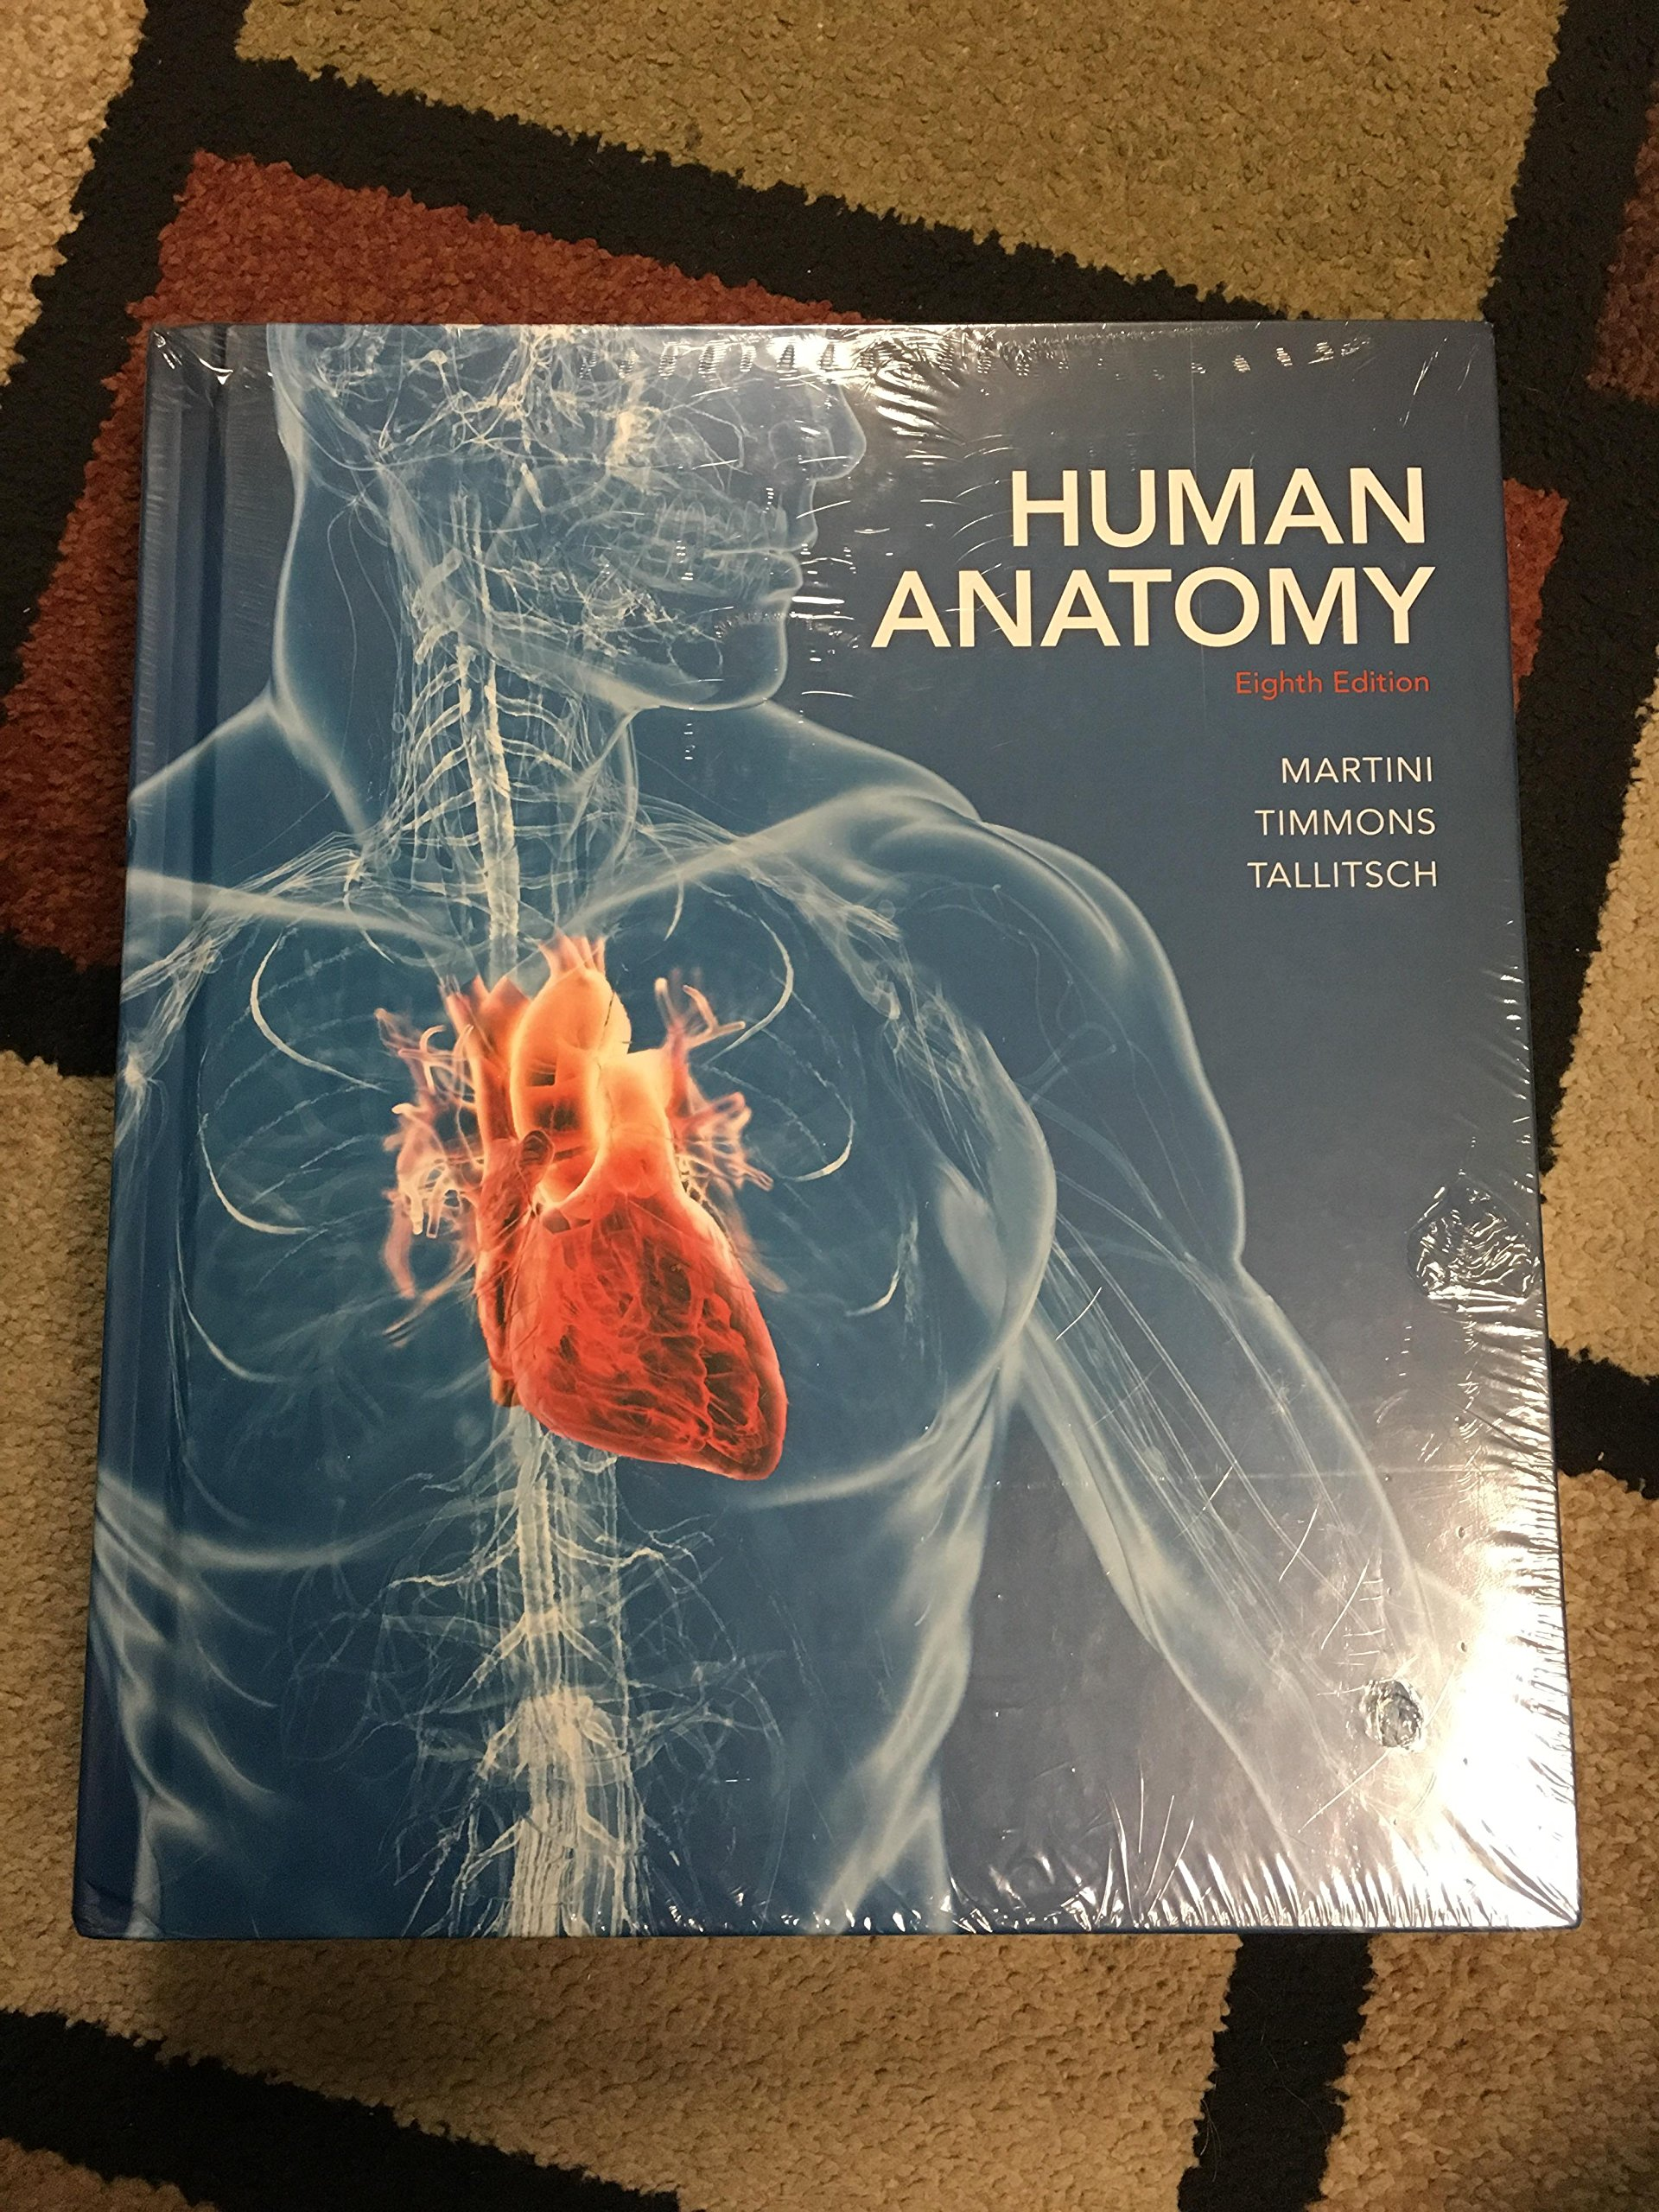 Bundle Human Anatomy 8th Edition And A Photographic Atlas For